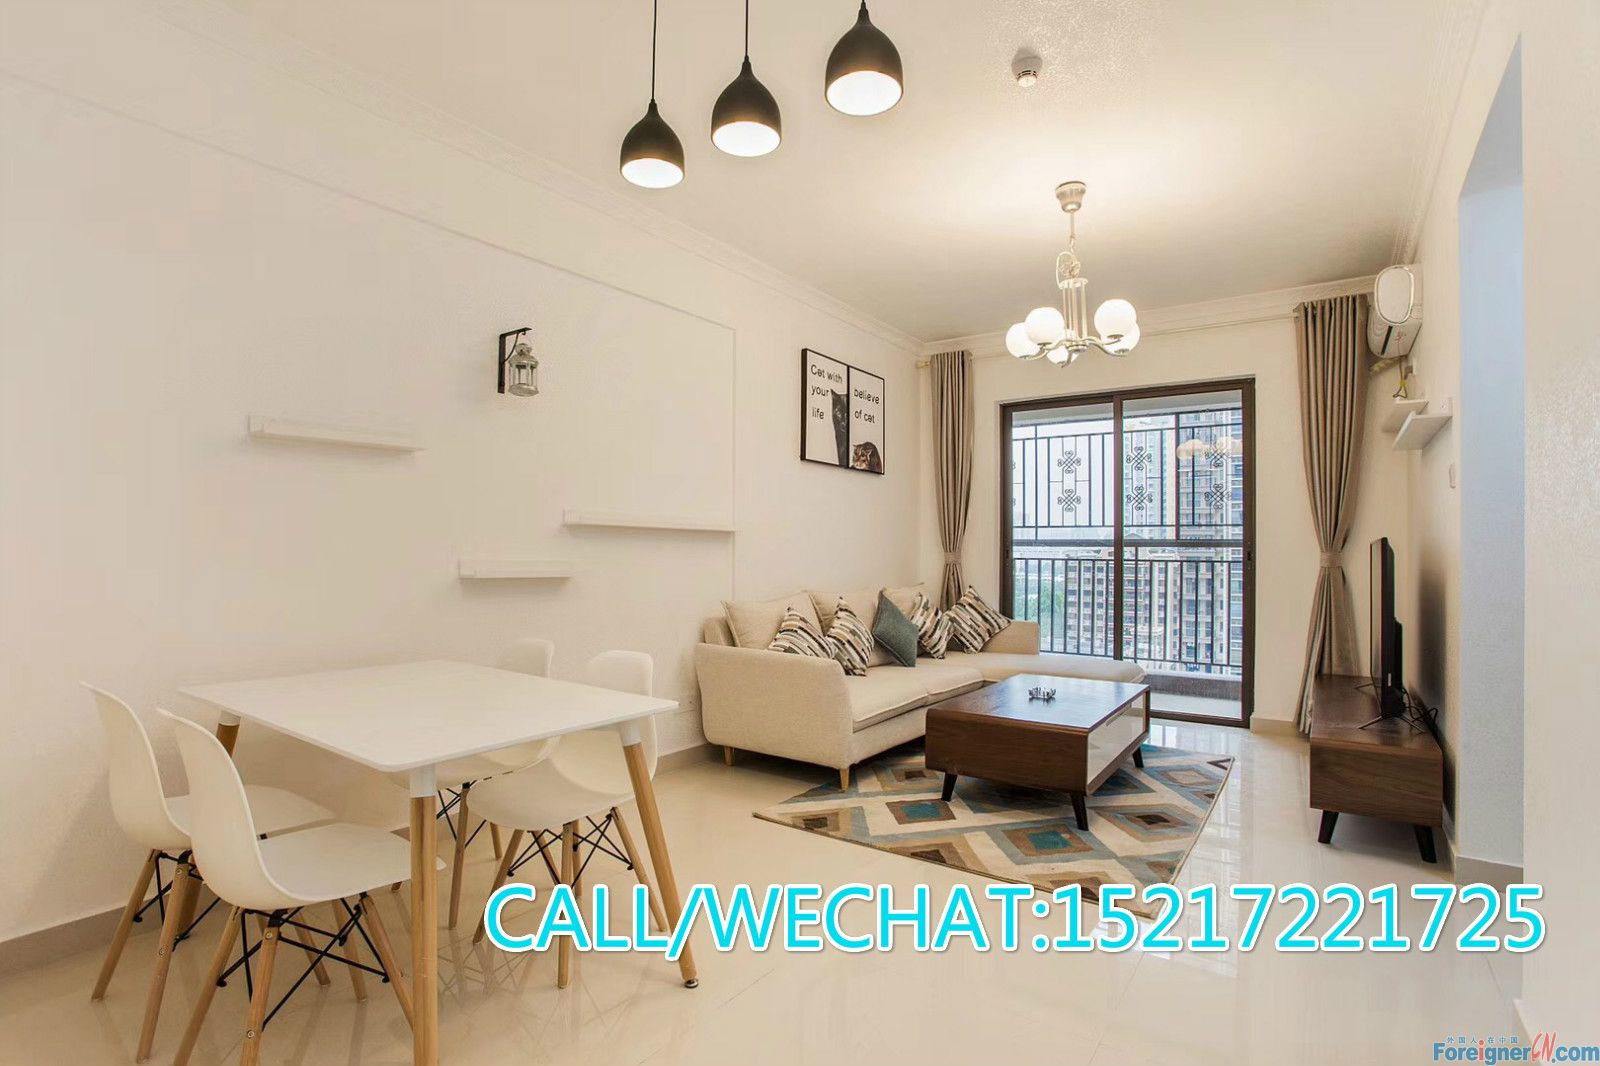 newly 3bedrooms for rent in Tancun (ZhuJiang New Town)new modern ,new Ikea furniture,high floors